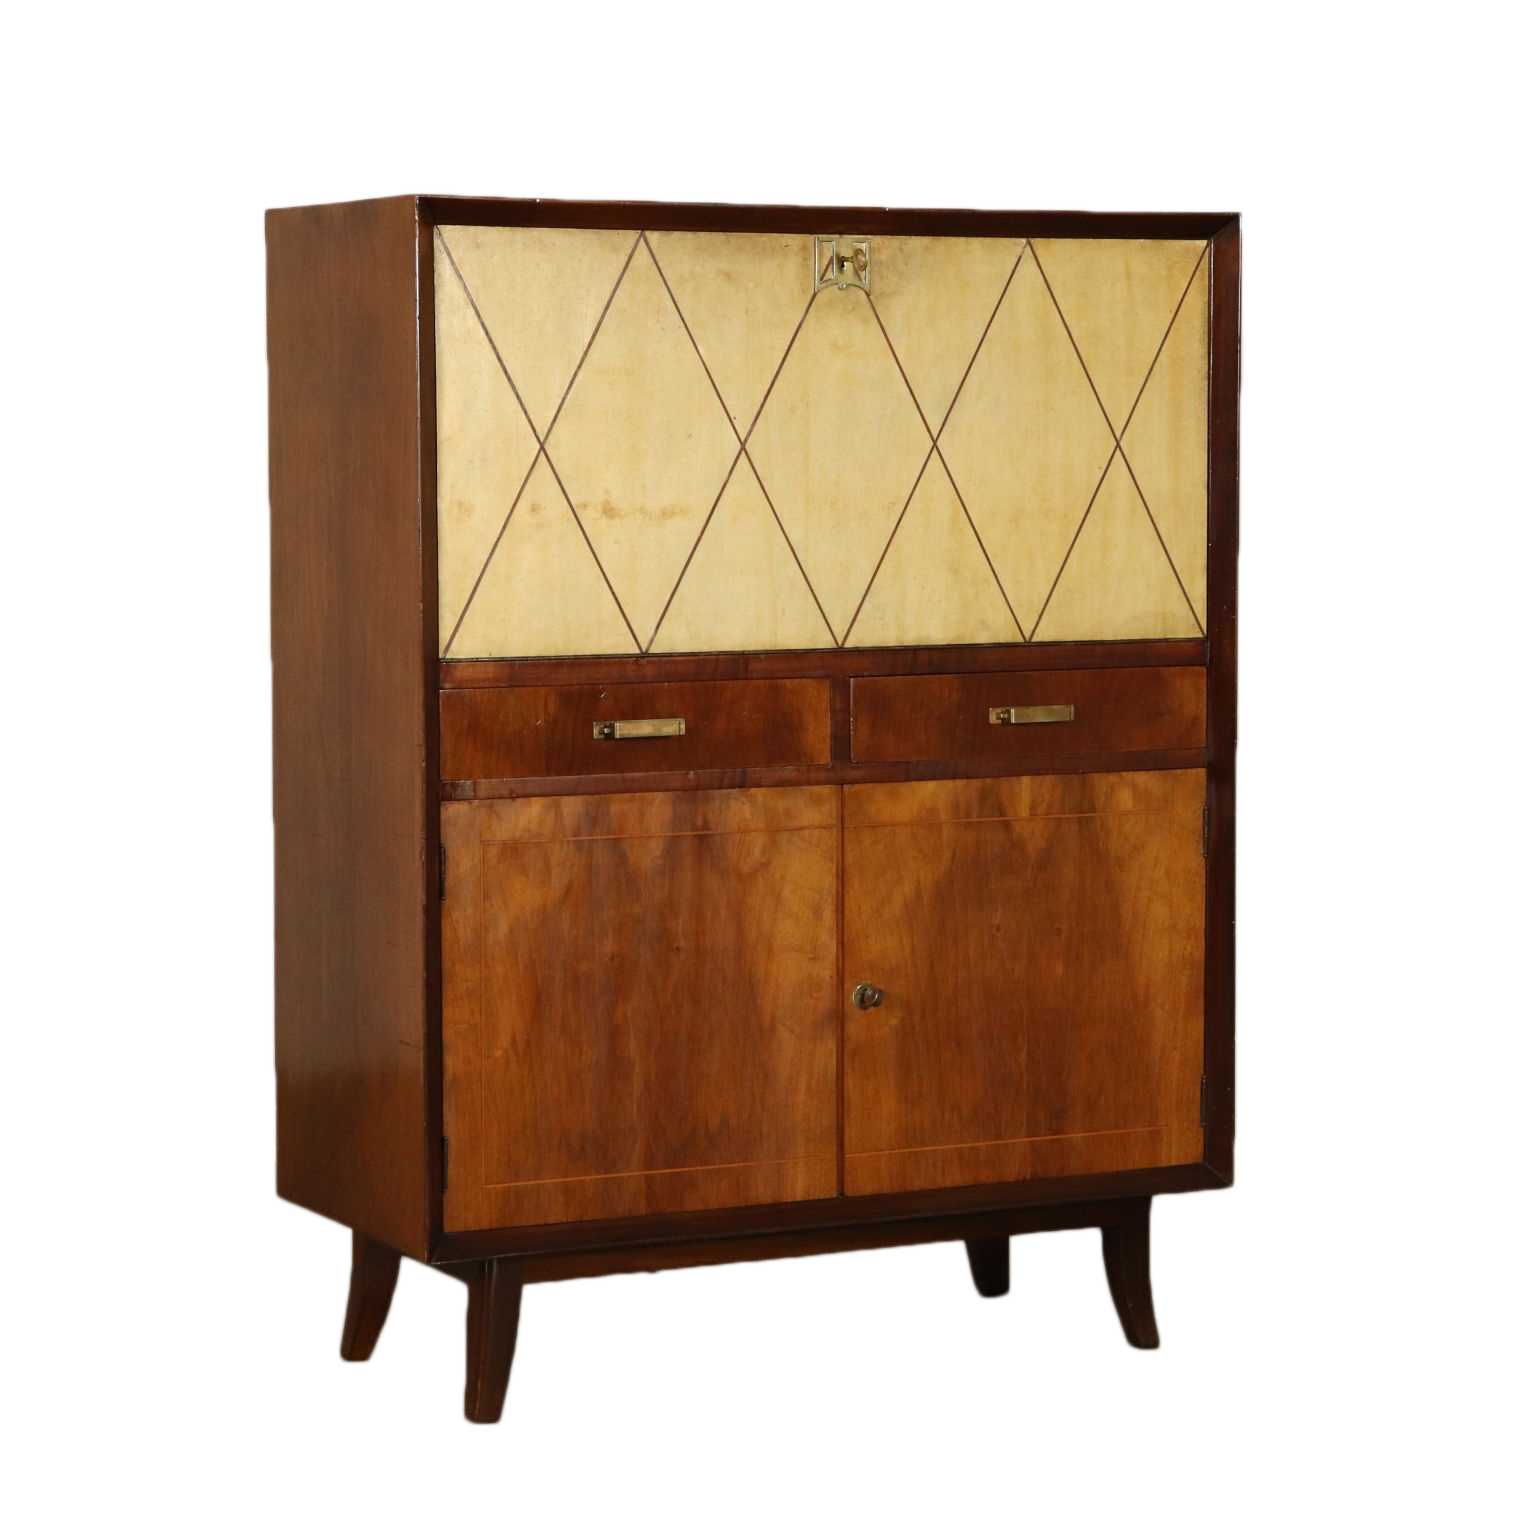 Cabinet Bar Italia 1930 - Bar Cabinet Made in Italy - 1930